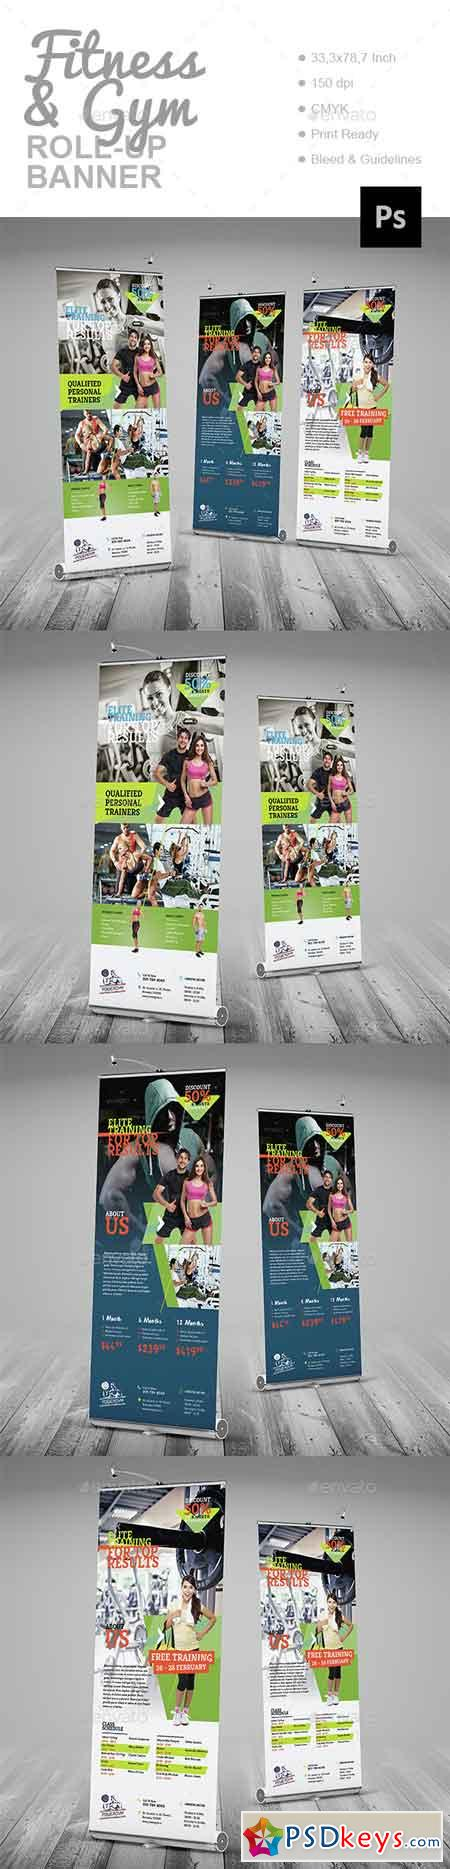 Fitness & Gym Roll-Up Banner 14880884